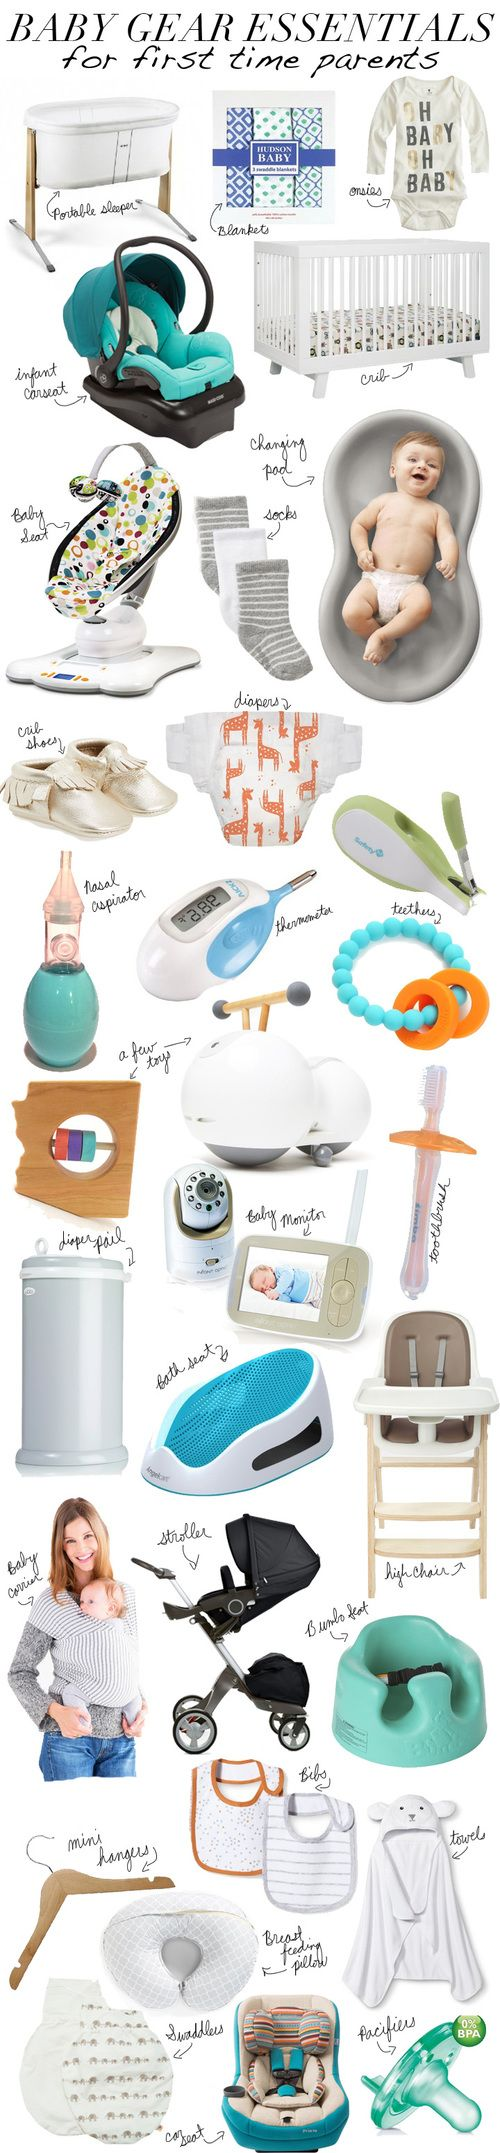 30 Essentials Every 1st Time Parent Needs On Their Registry   www.mommasociety.com